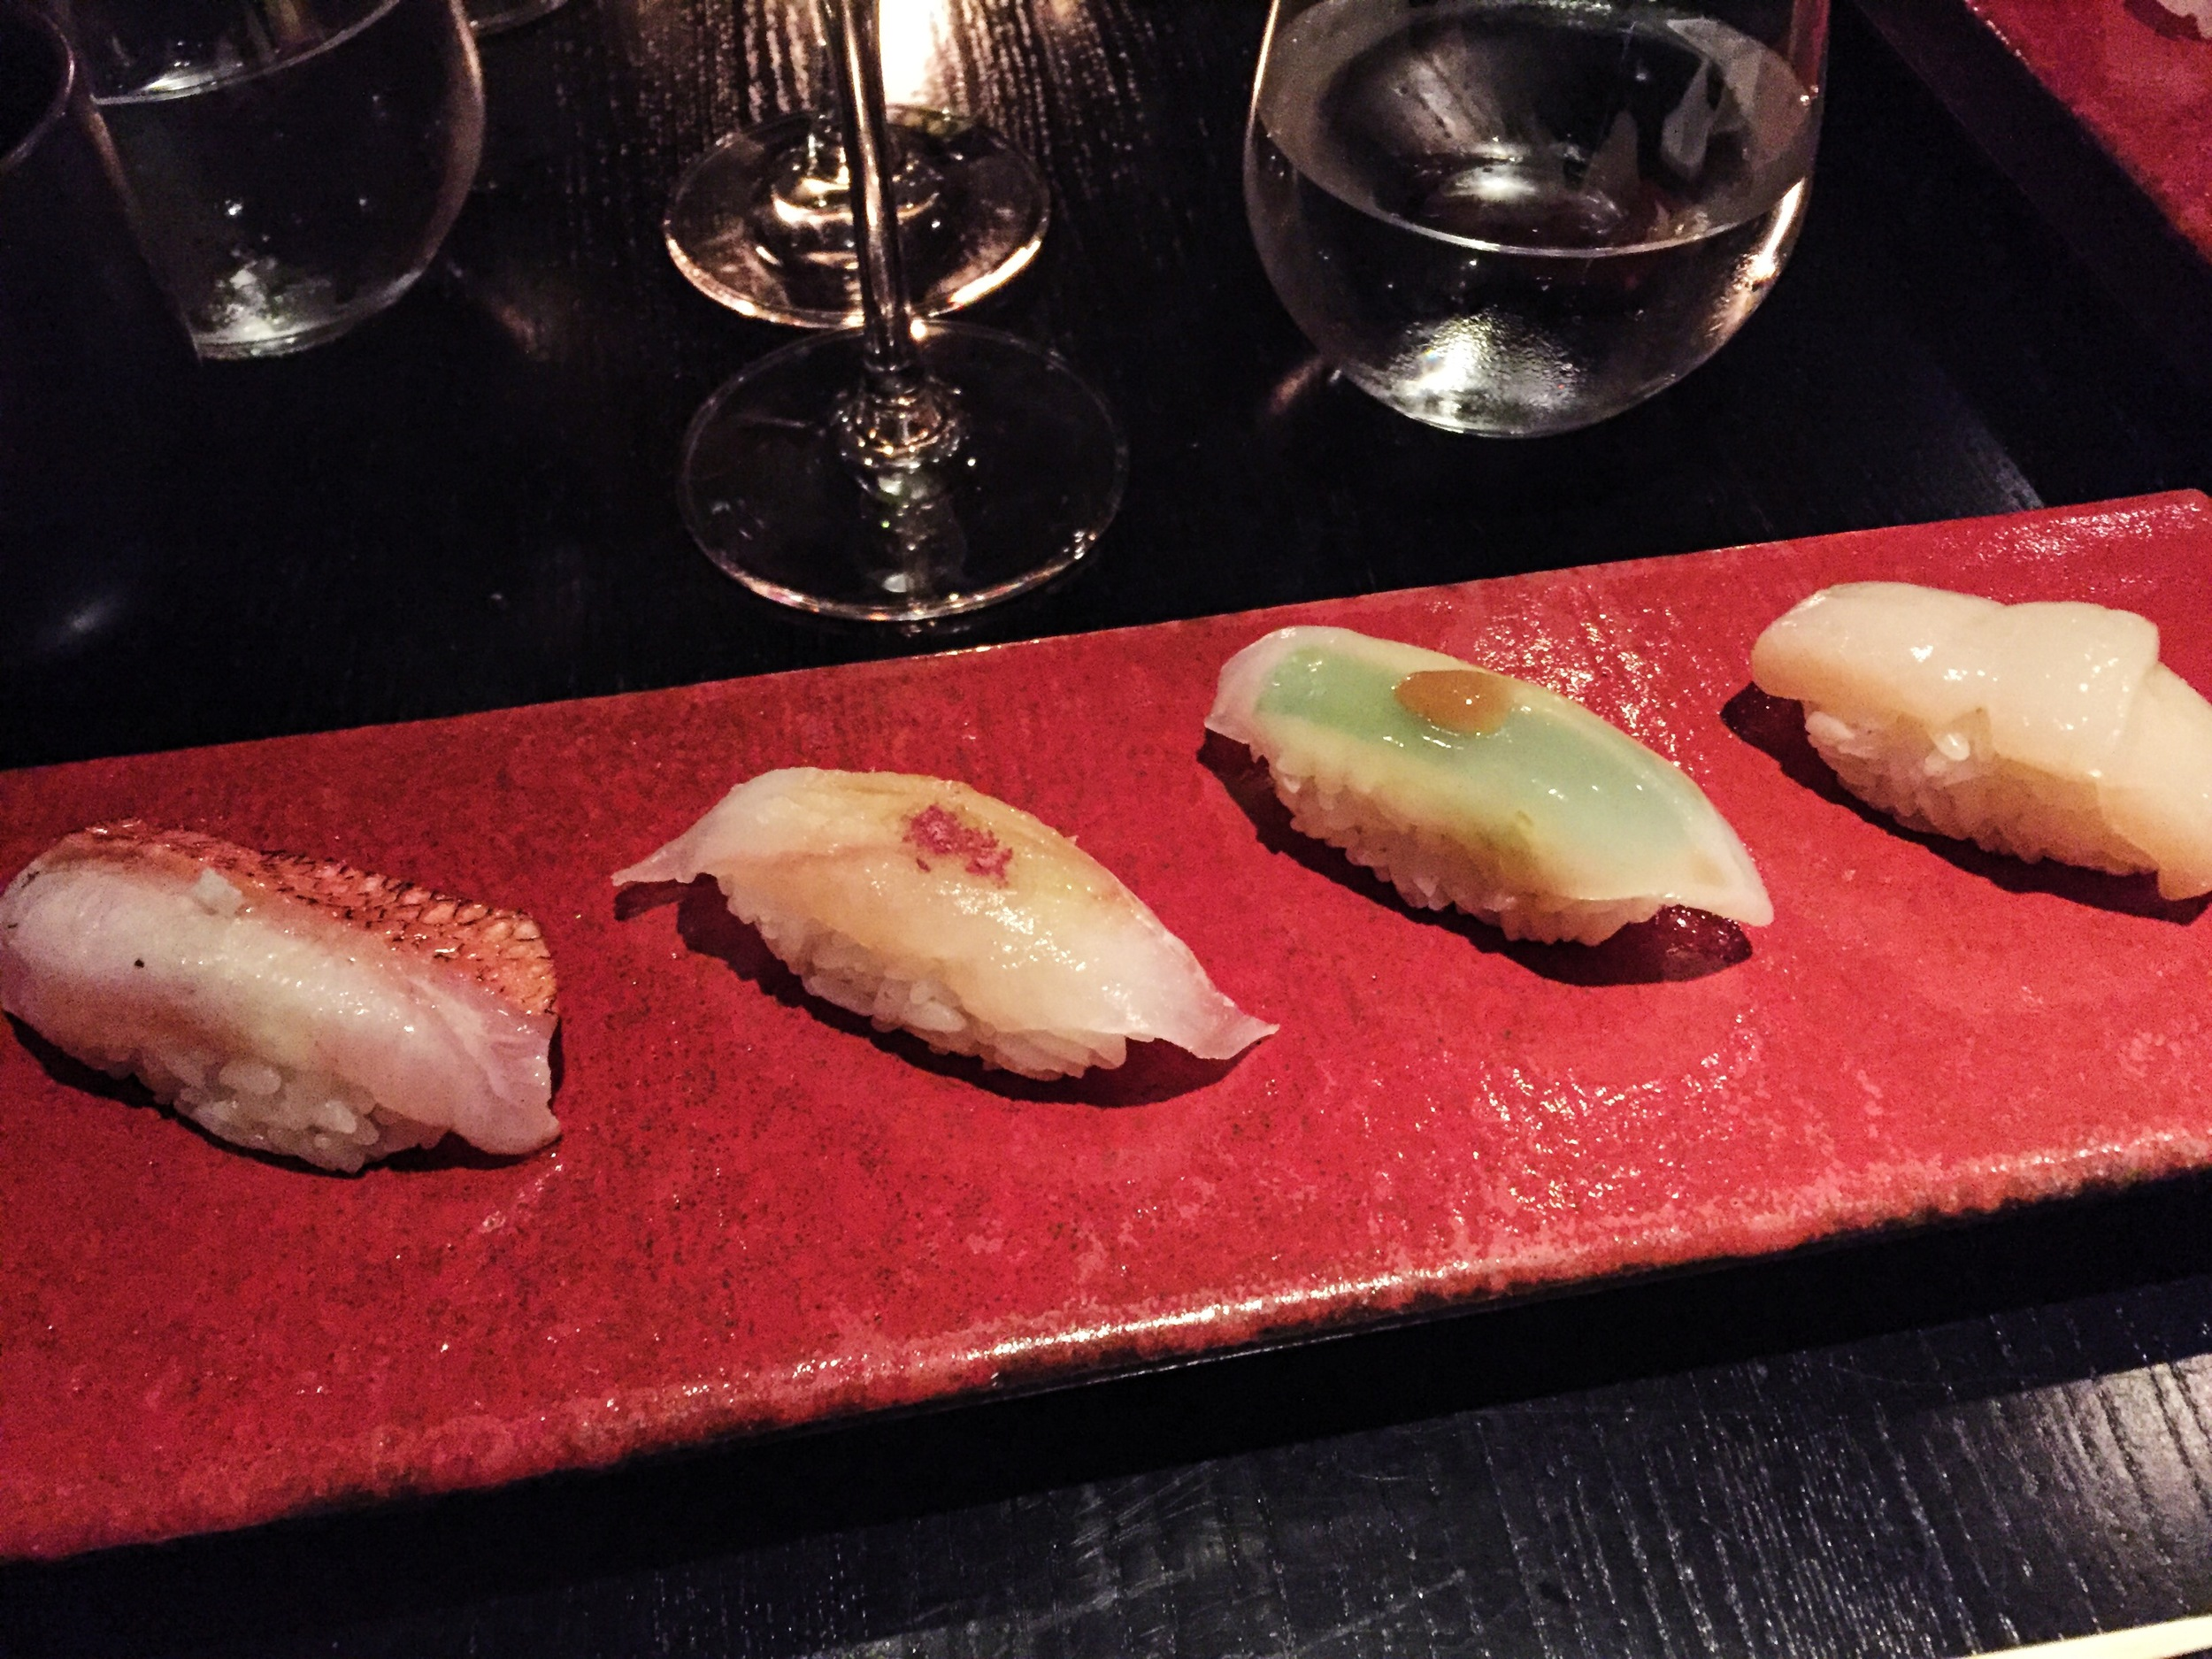 Courses 4-7: Squid, scallop, ikura